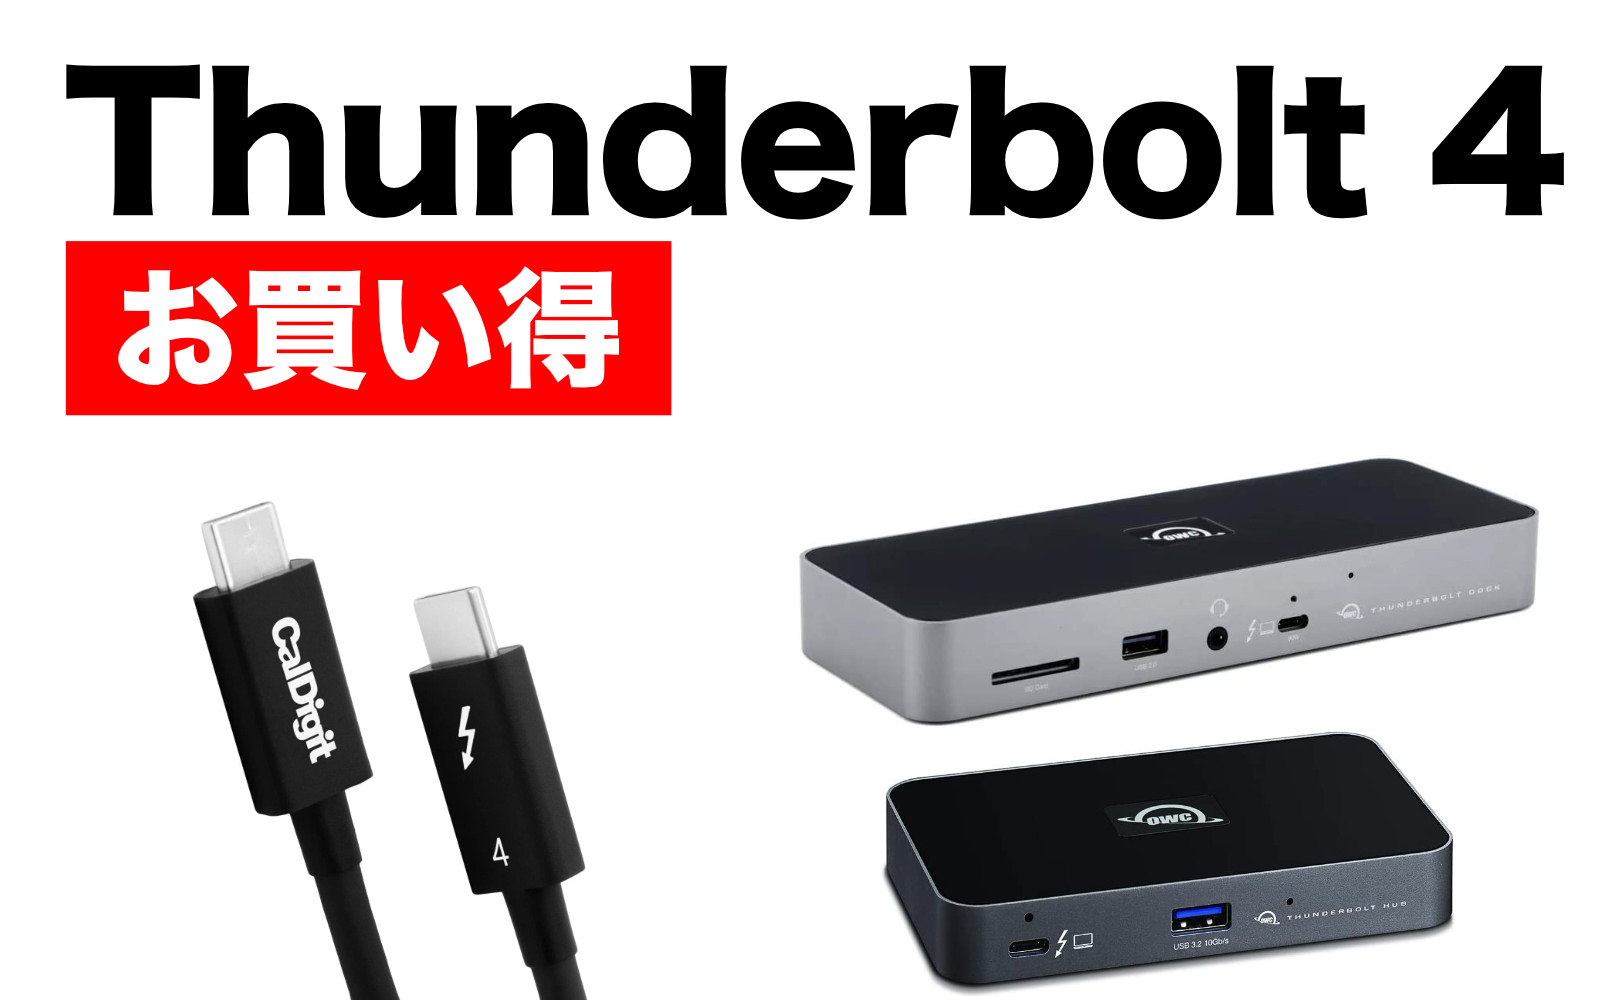 Thunderbolt 4 products on sale